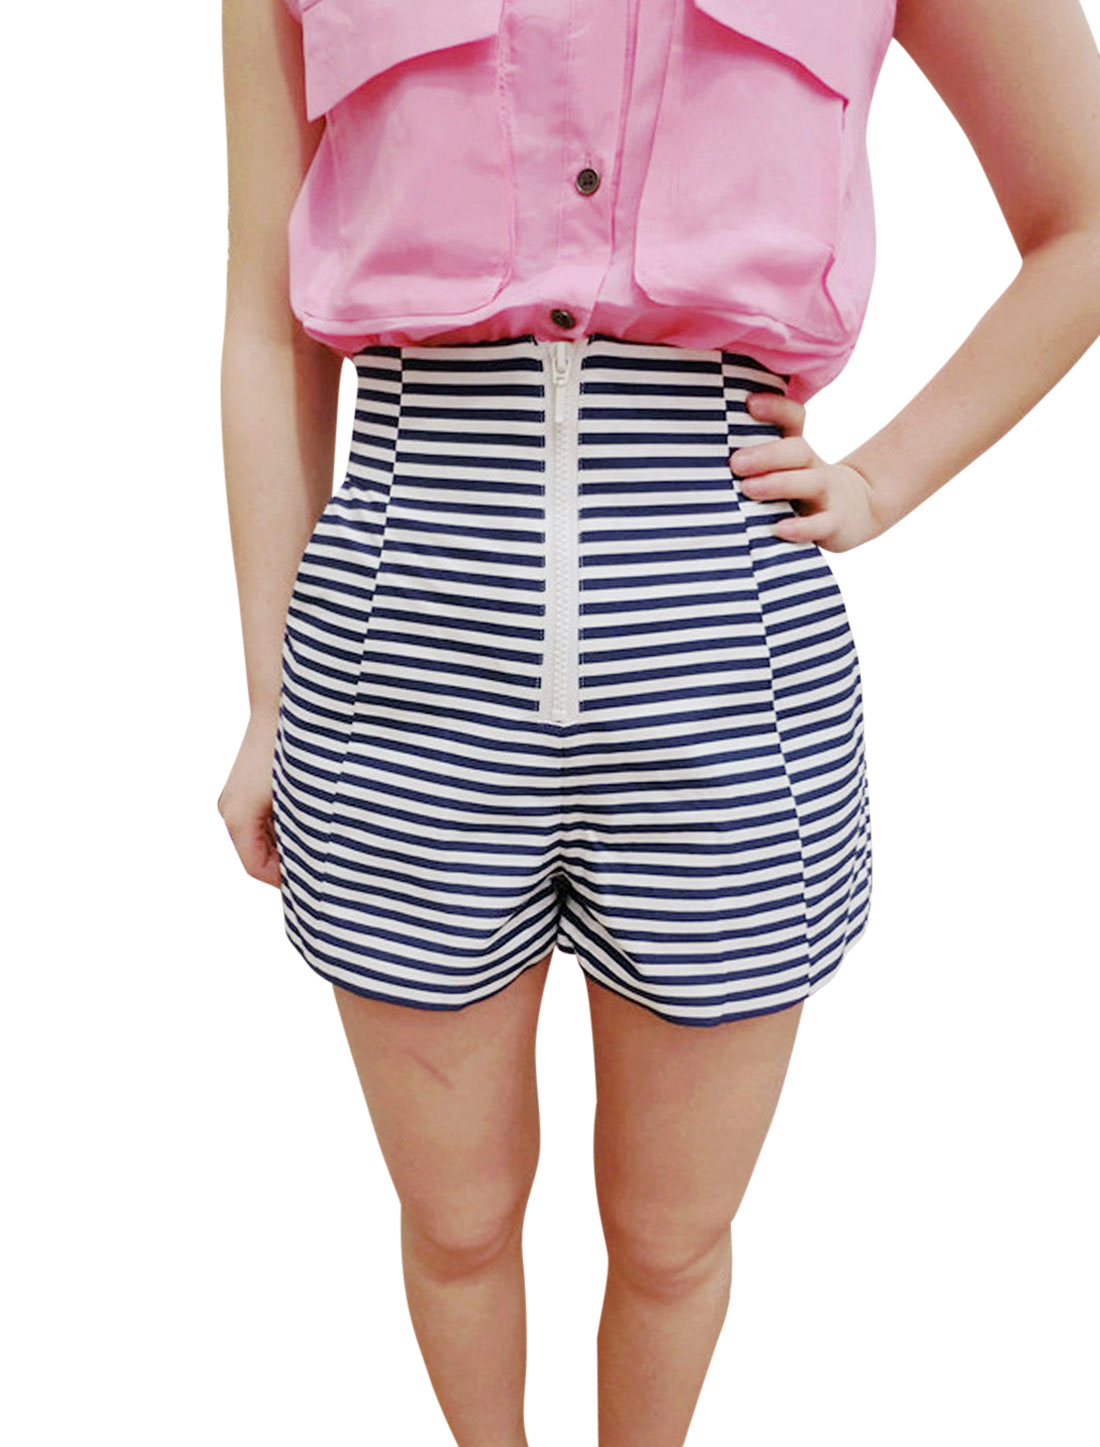 Lady High Rise Zip Front Stripes Slim Fit Shorts White Dark Blue XS